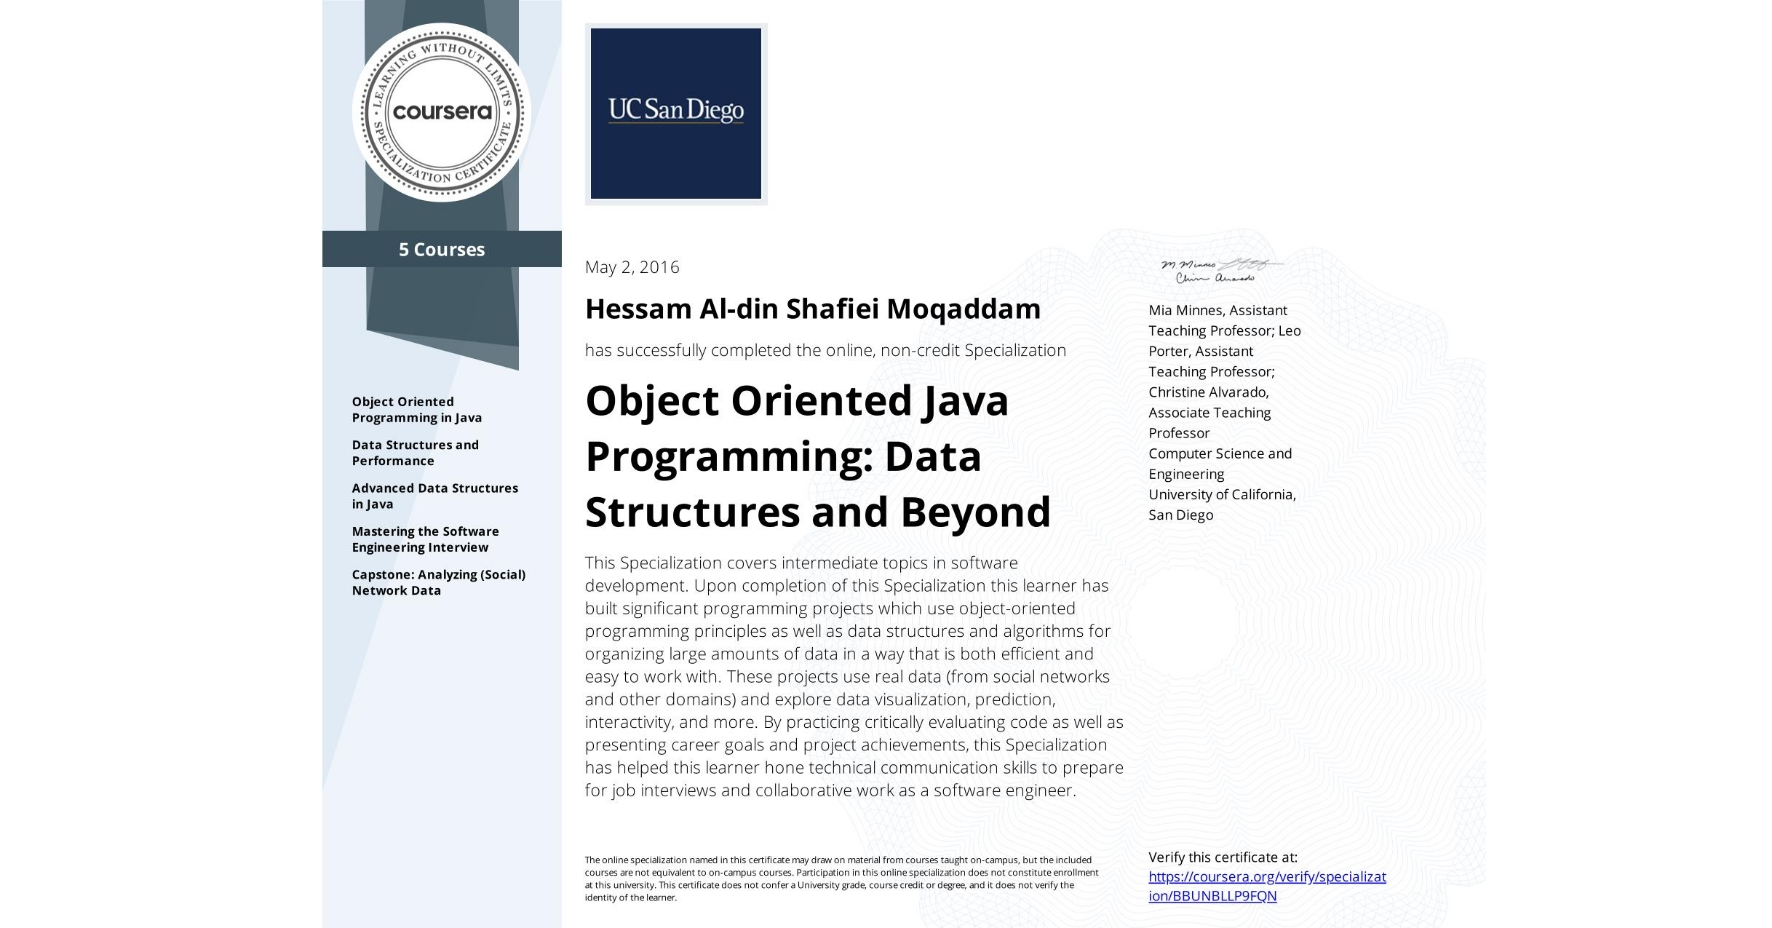 View certificate for Hessam Al-din  Shafiei Moqaddam, Object Oriented Java Programming: Data Structures and Beyond, offered through Coursera. This Specialization covers intermediate topics in software development. Upon completion of this Specialization this learner has built significant programming projects which use object-oriented programming principles as well as data structures and algorithms for organizing large amounts of data in a way that is both efficient and easy to work with.  These projects use real data (from social networks and other domains) and explore data visualization, prediction, interactivity, and more. By practicing critically evaluating code as well as presenting career goals and project achievements, this Specialization has helped this learner hone technical communication skills to prepare for job interviews and collaborative work as a software engineer.